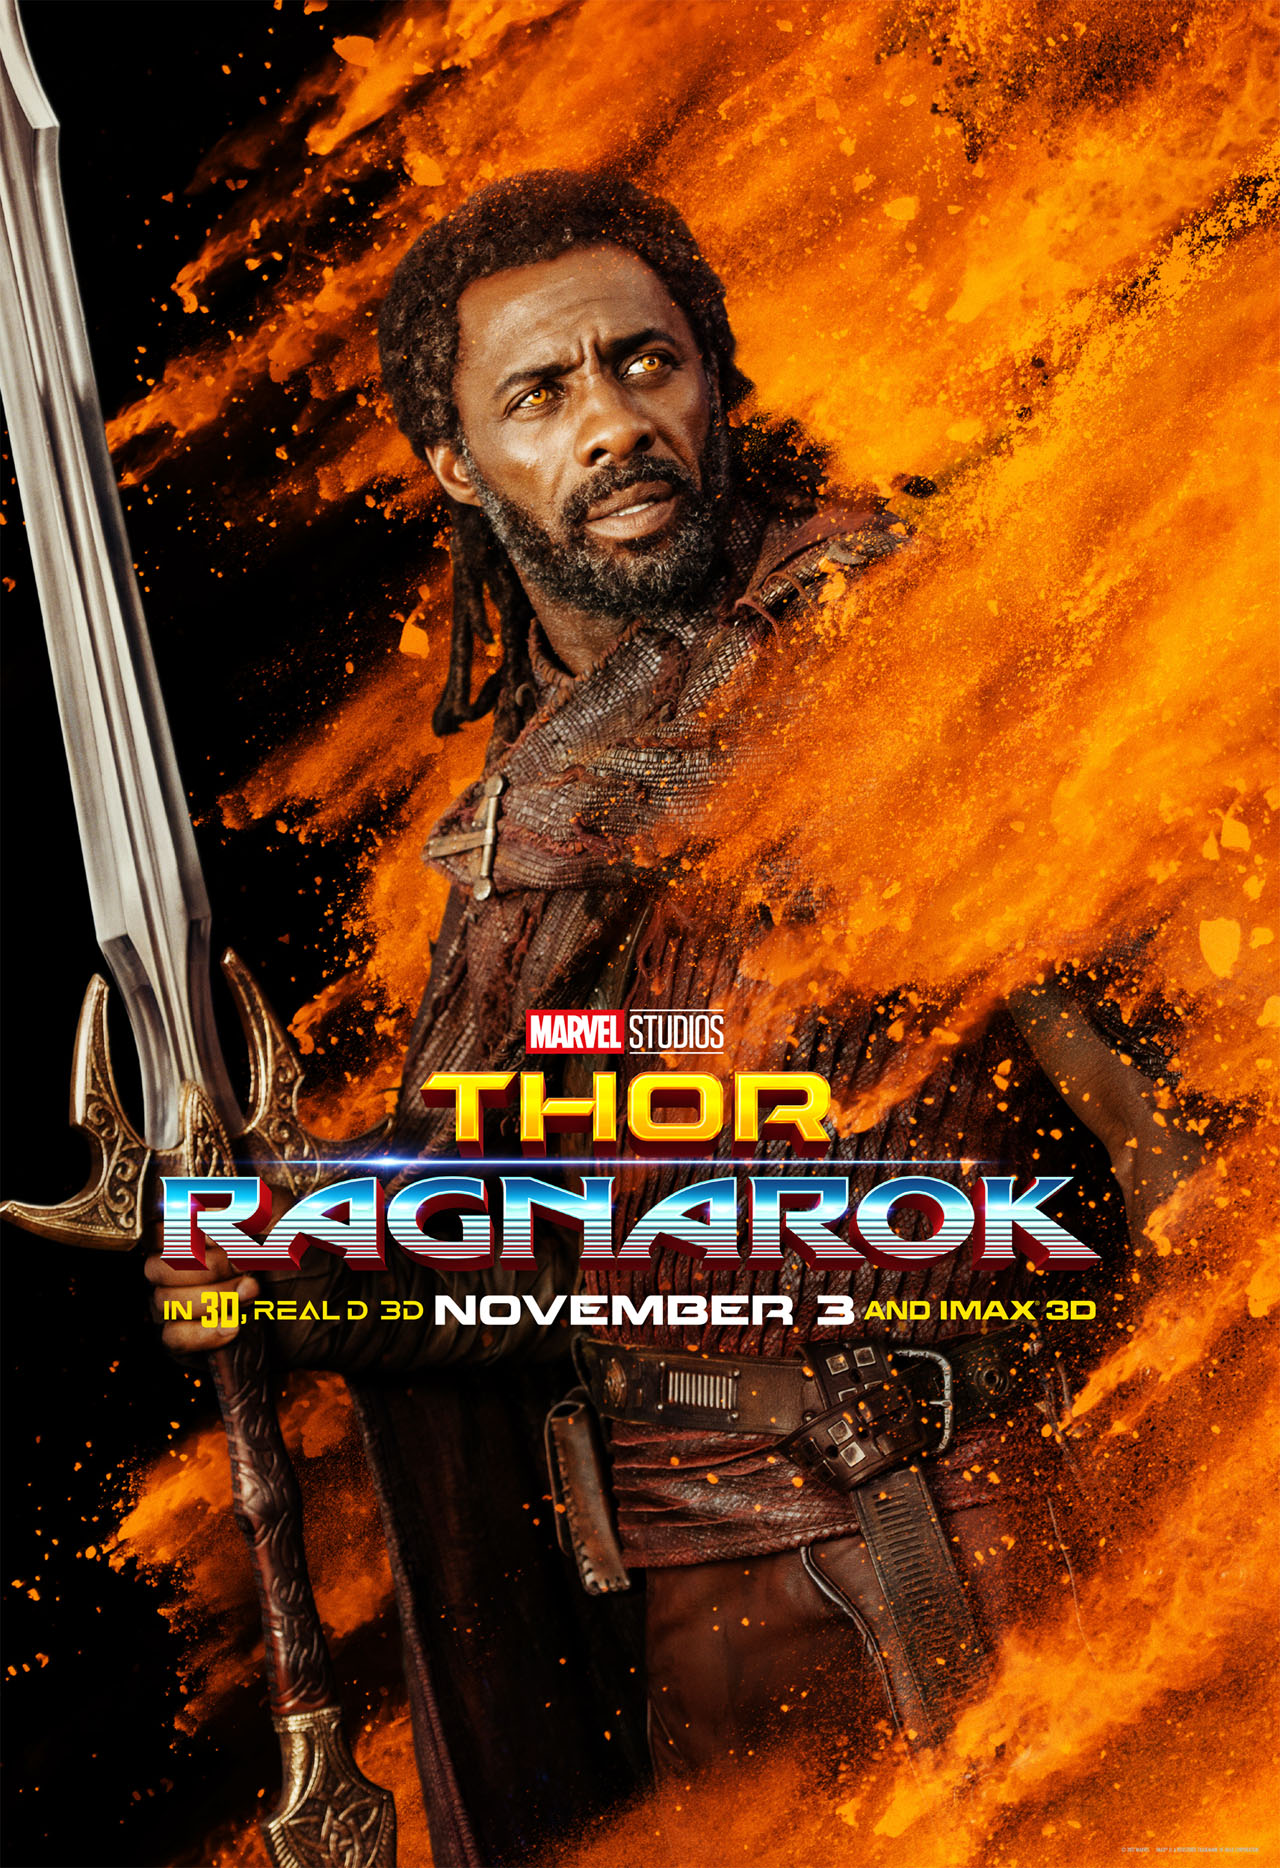 Thor Ragnarok character posters